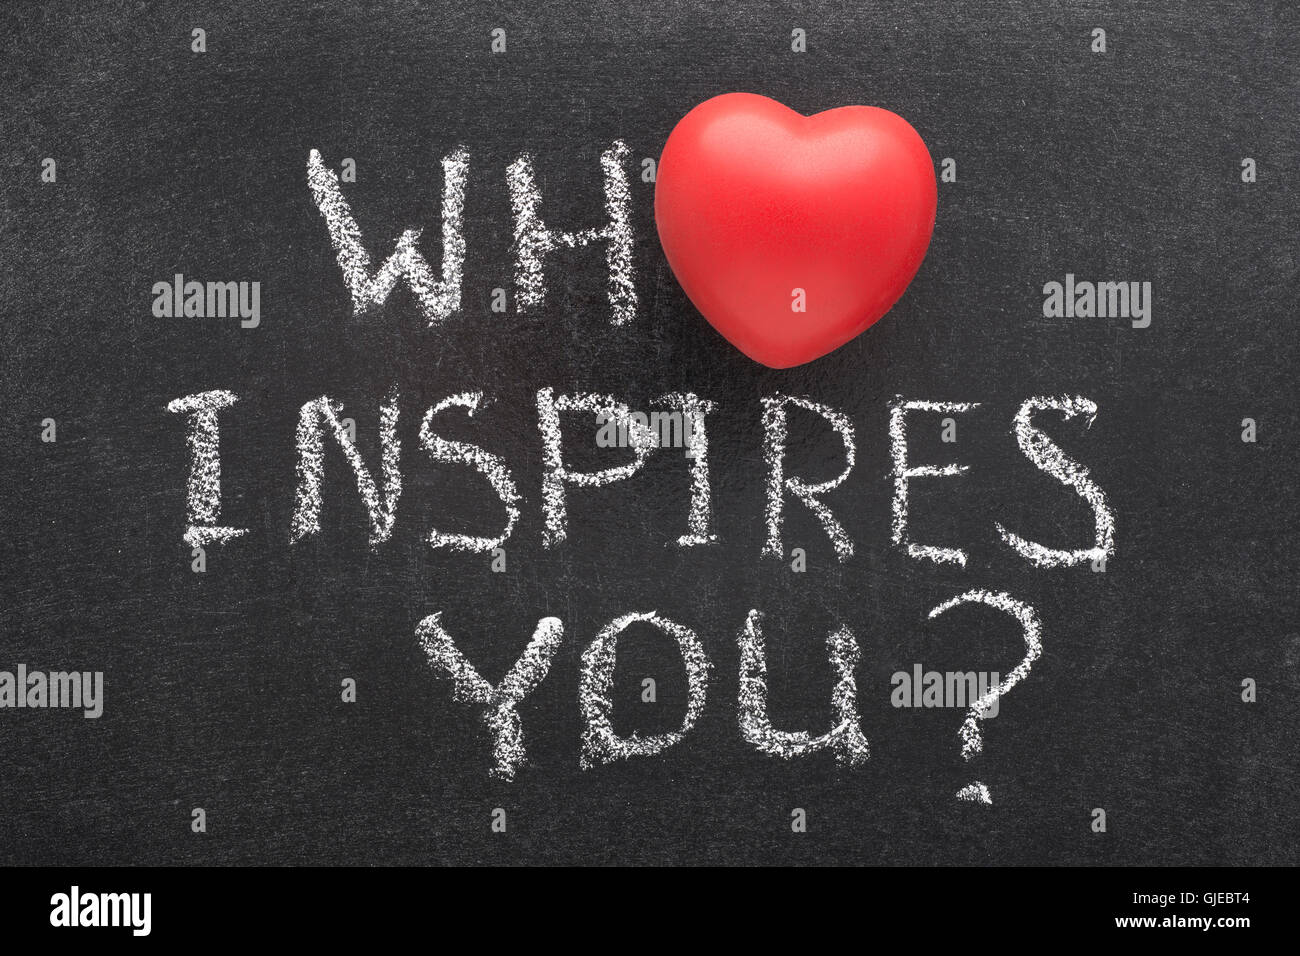 Who inspires you question handwritten on blackboard with heart who inspires you question handwritten on blackboard with heart symbol instead of o biocorpaavc